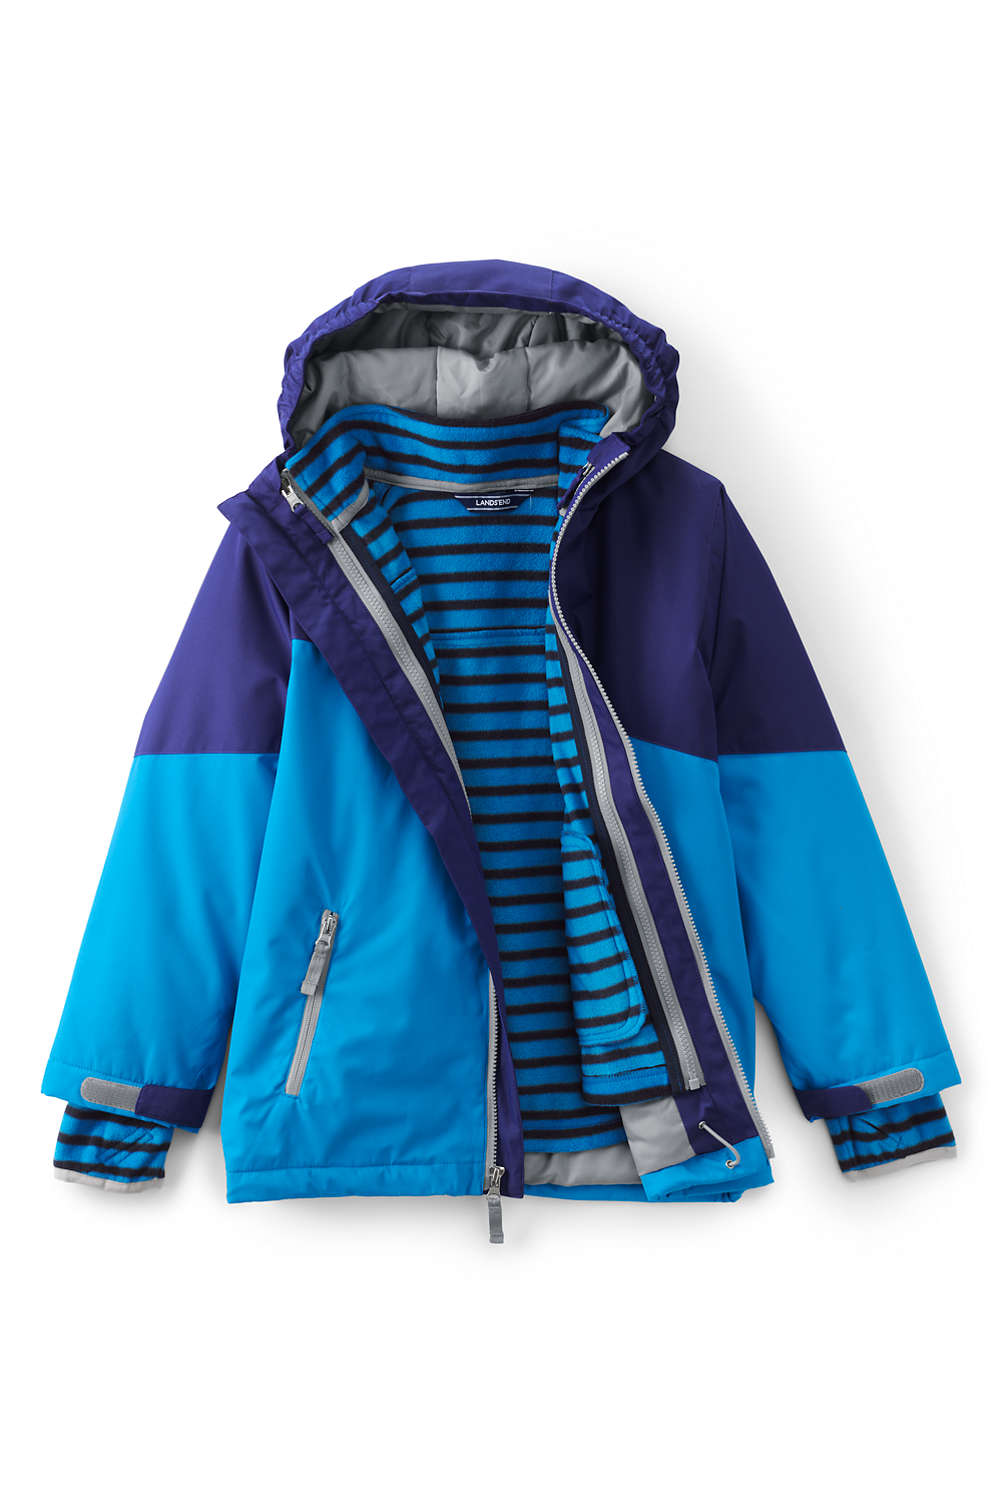 8bca0884188e Boys Stormer 3 in 1 Winter Parka from Lands  End